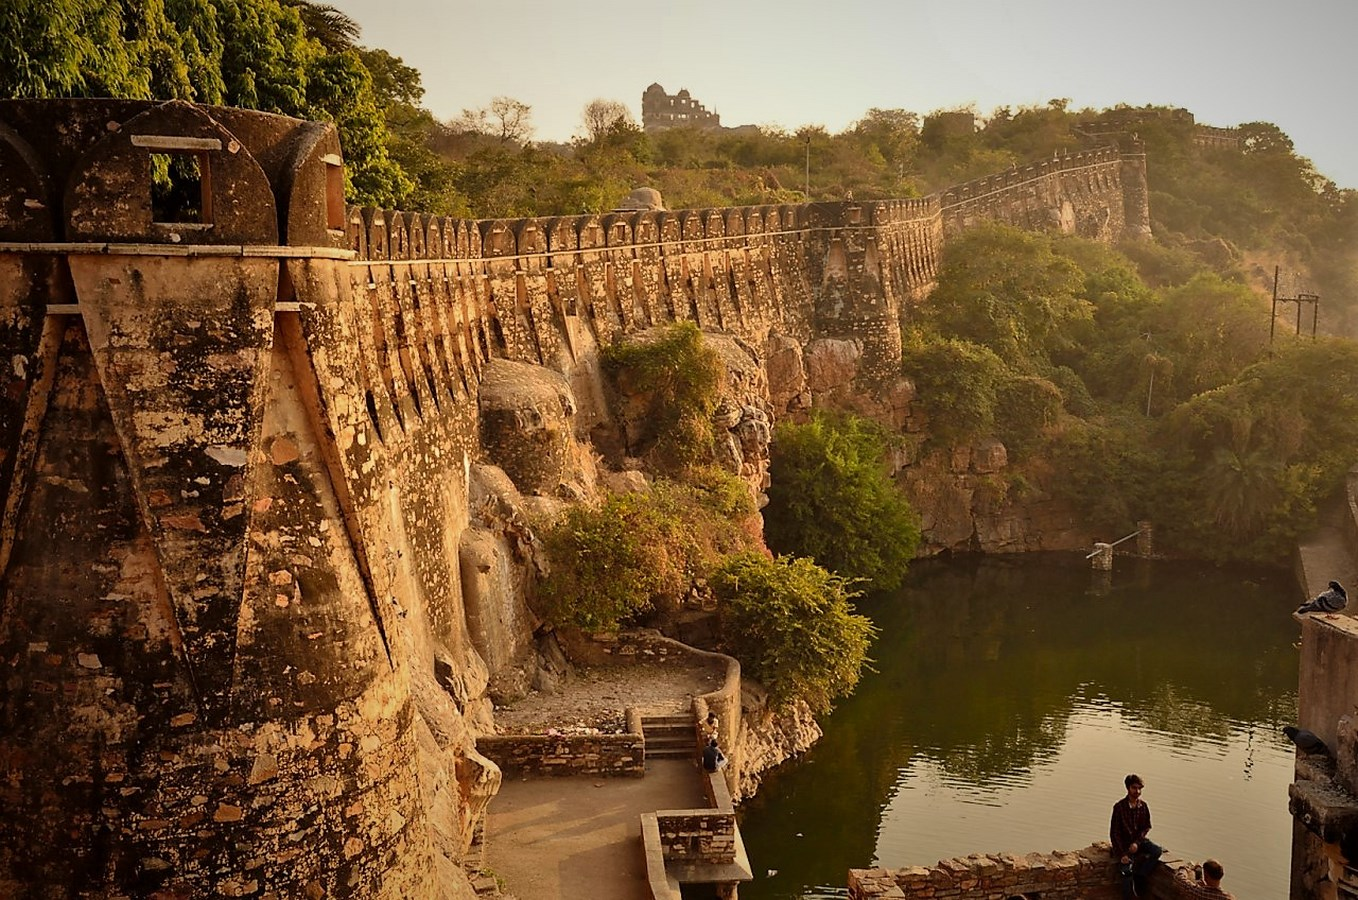 Architecture of Indian forts -4